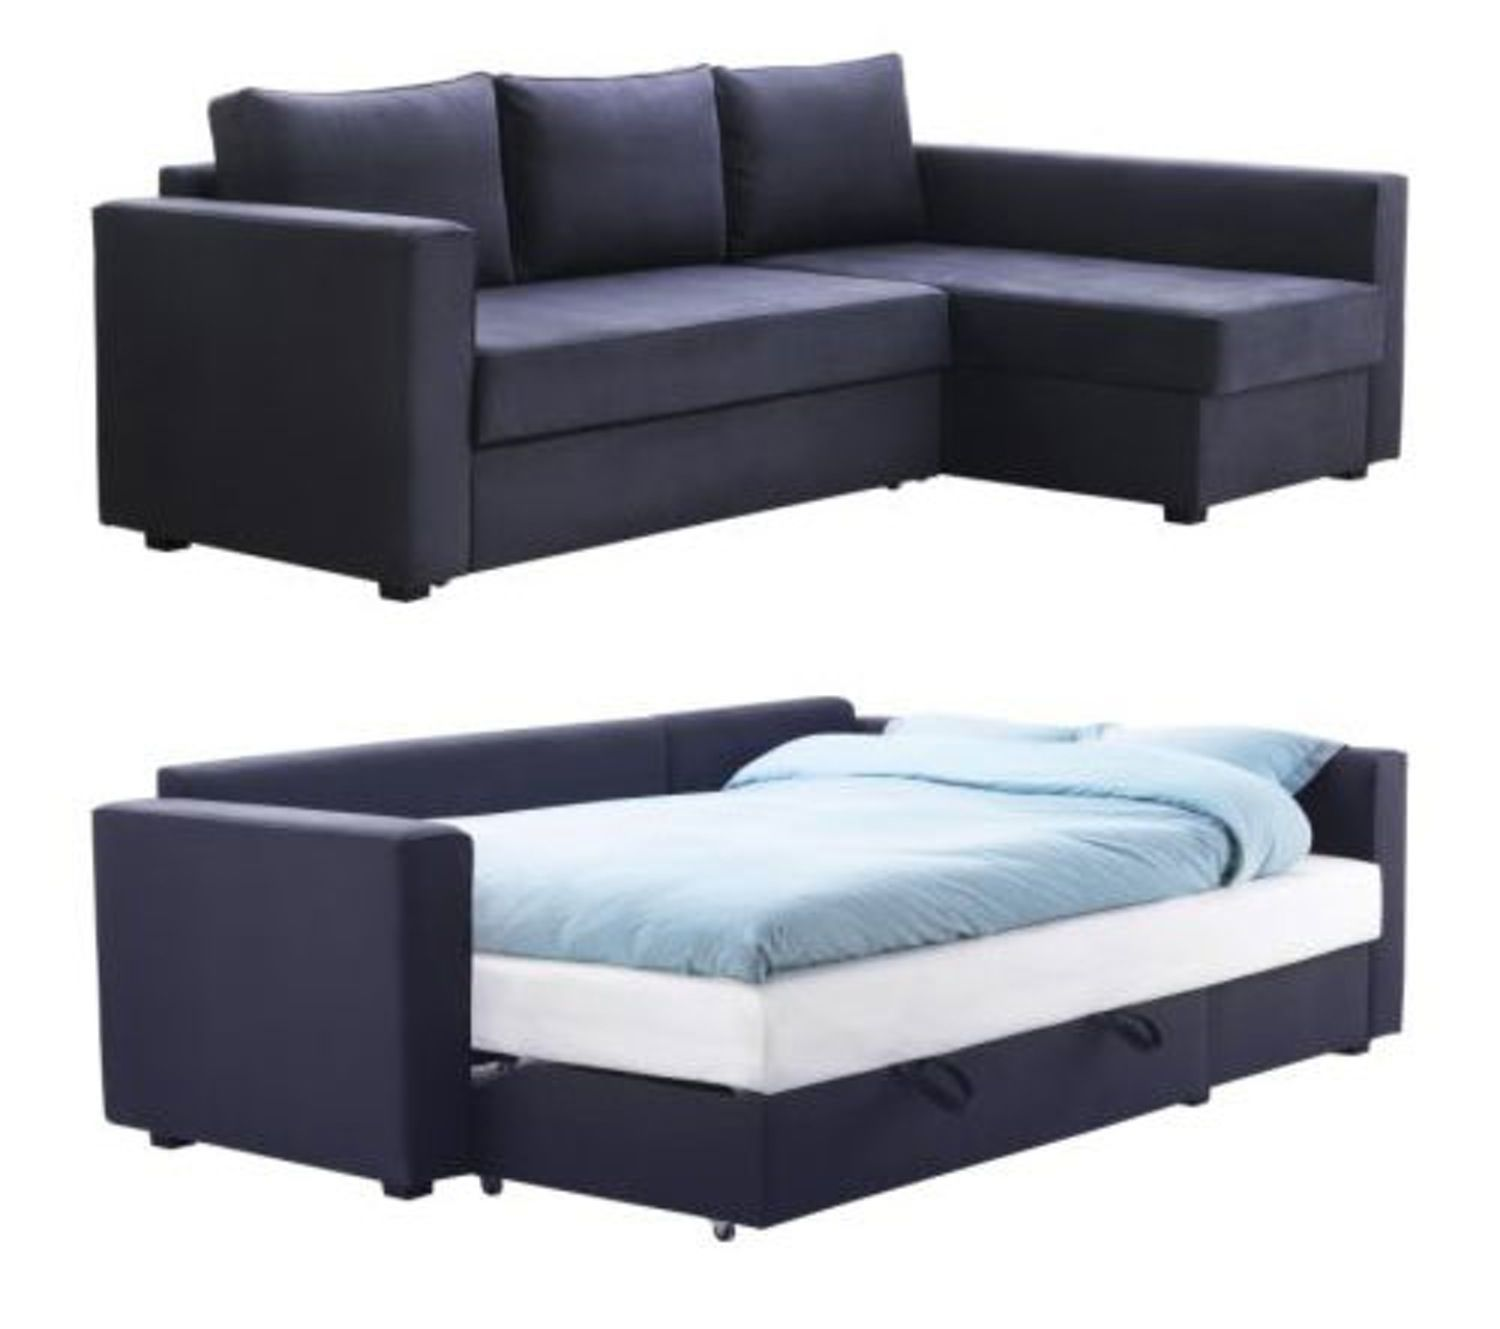 Manstad Sofa Bed With Storage From Ikea  Ikea Sofa Bed, Bed Couch And  Storage